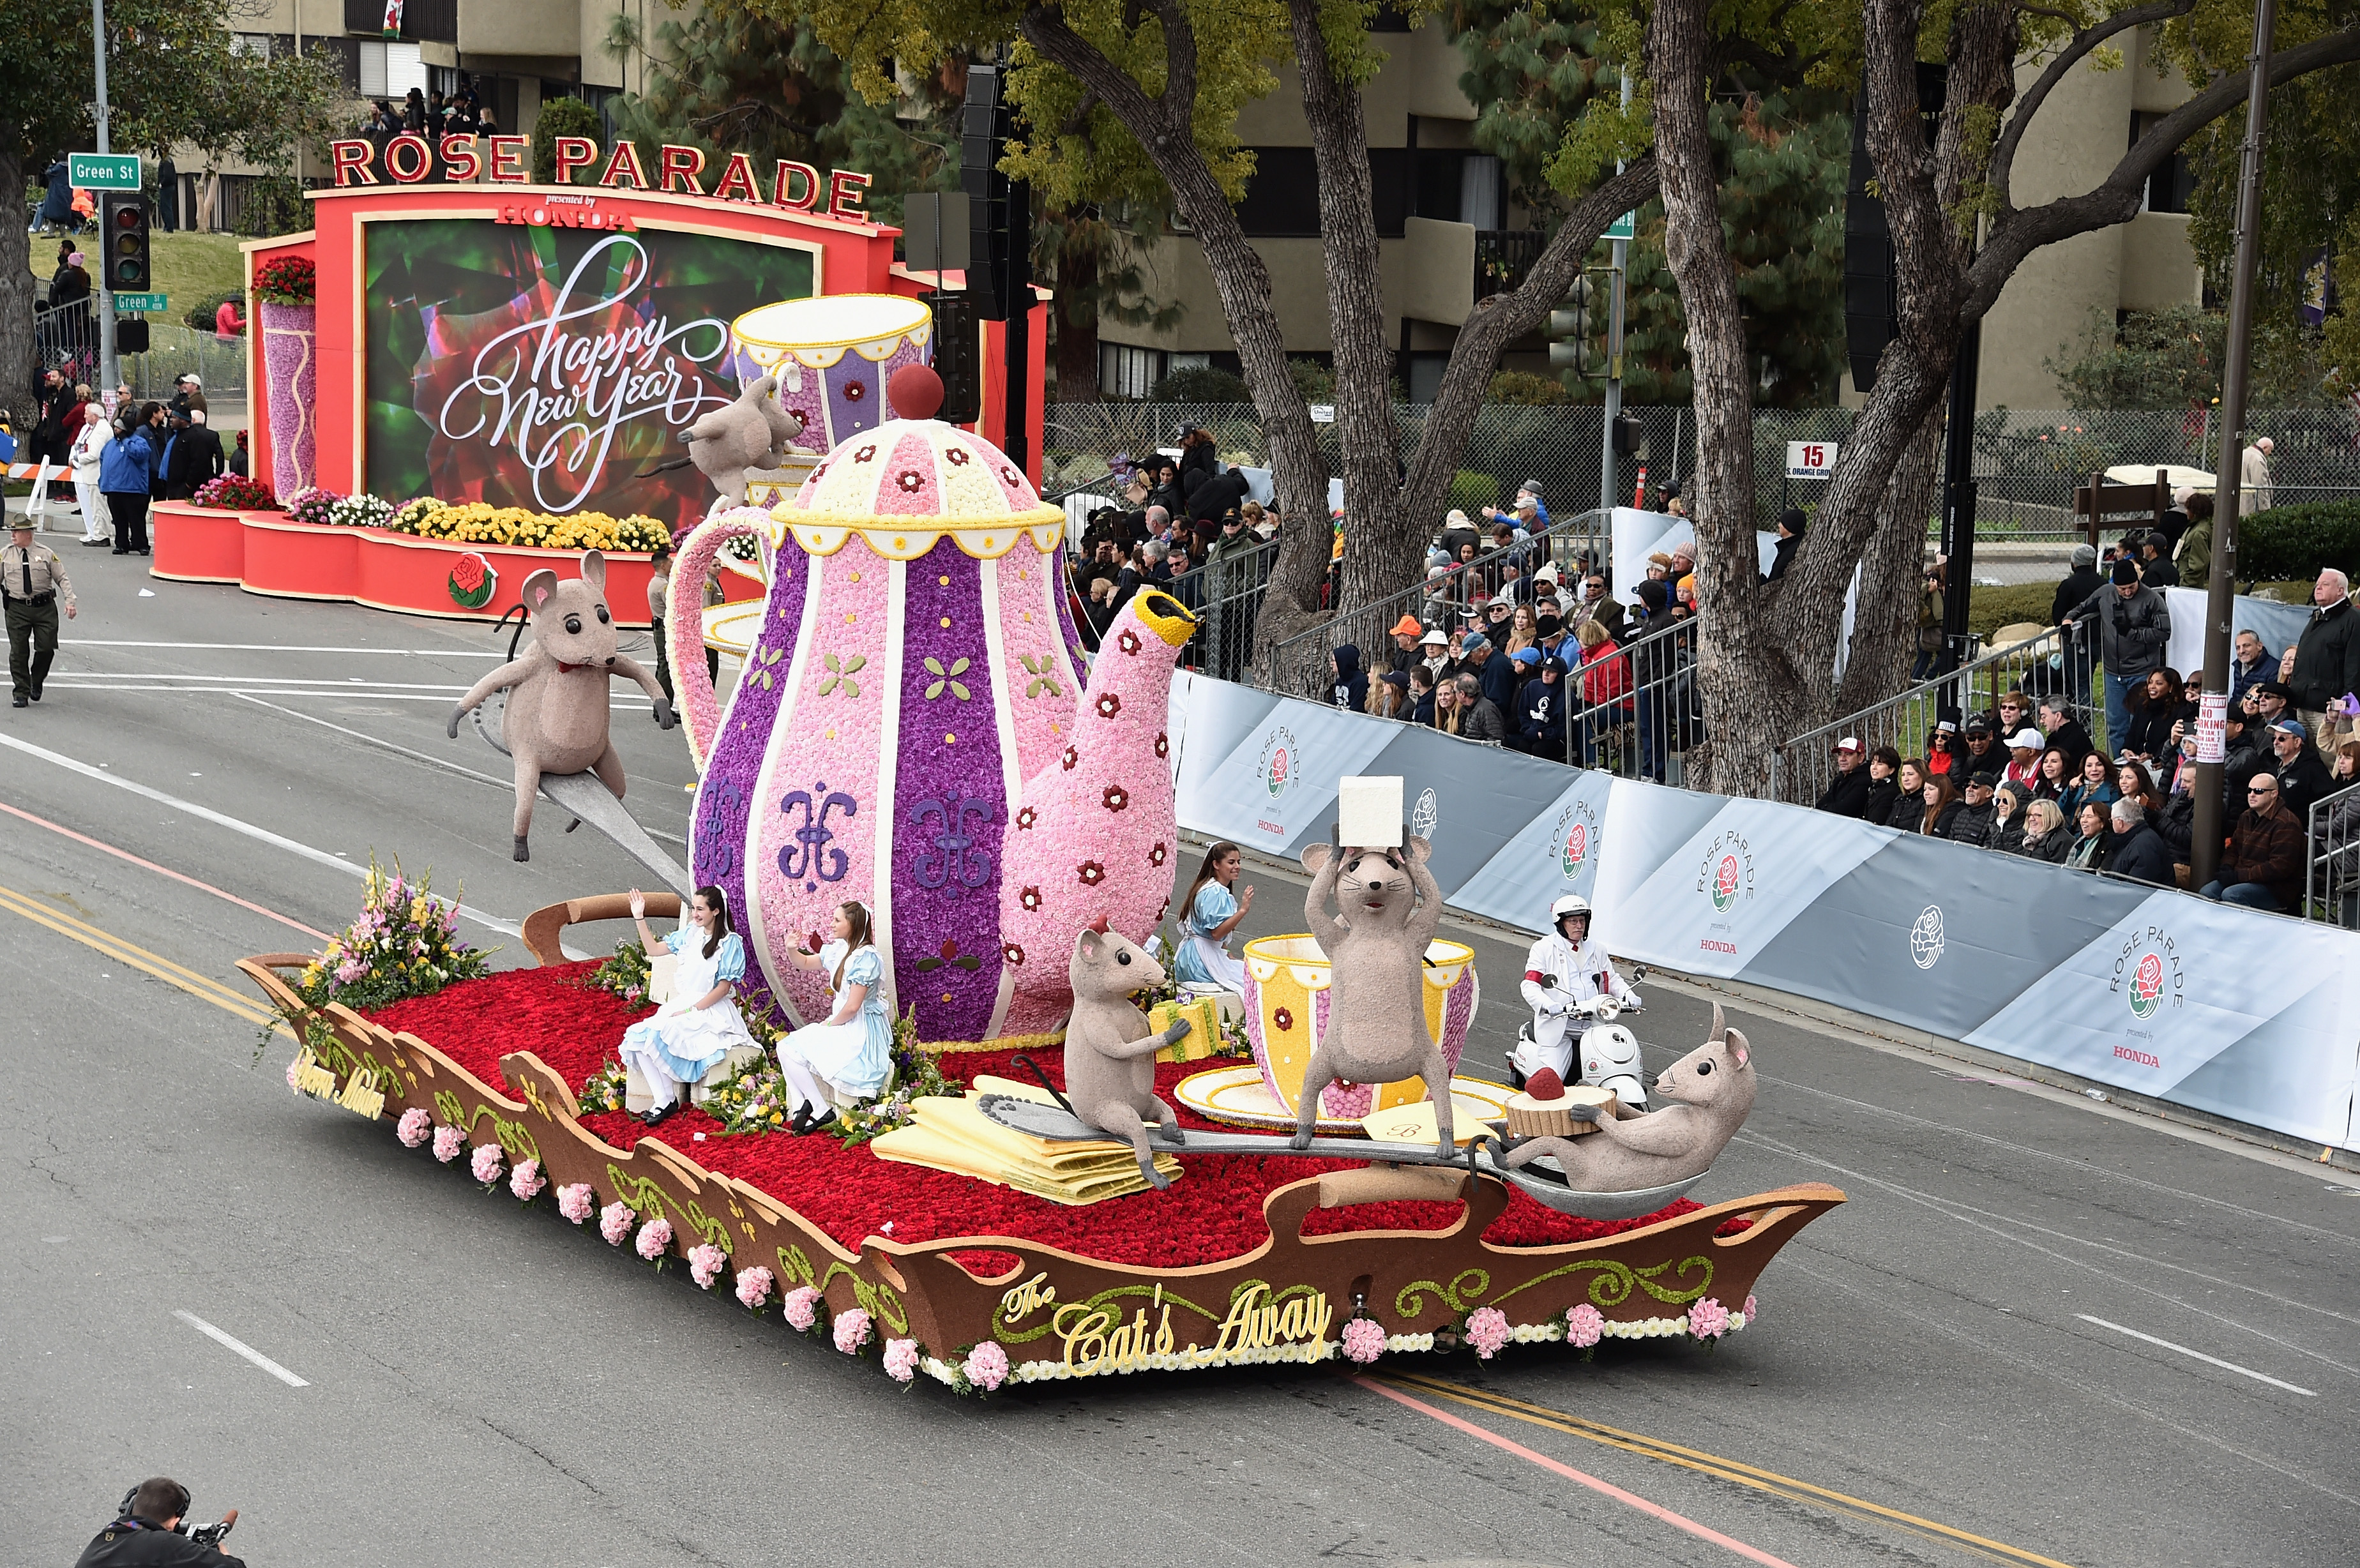 Rose Parade 2018: Live Stream Info, TV Channel, Start Time ...